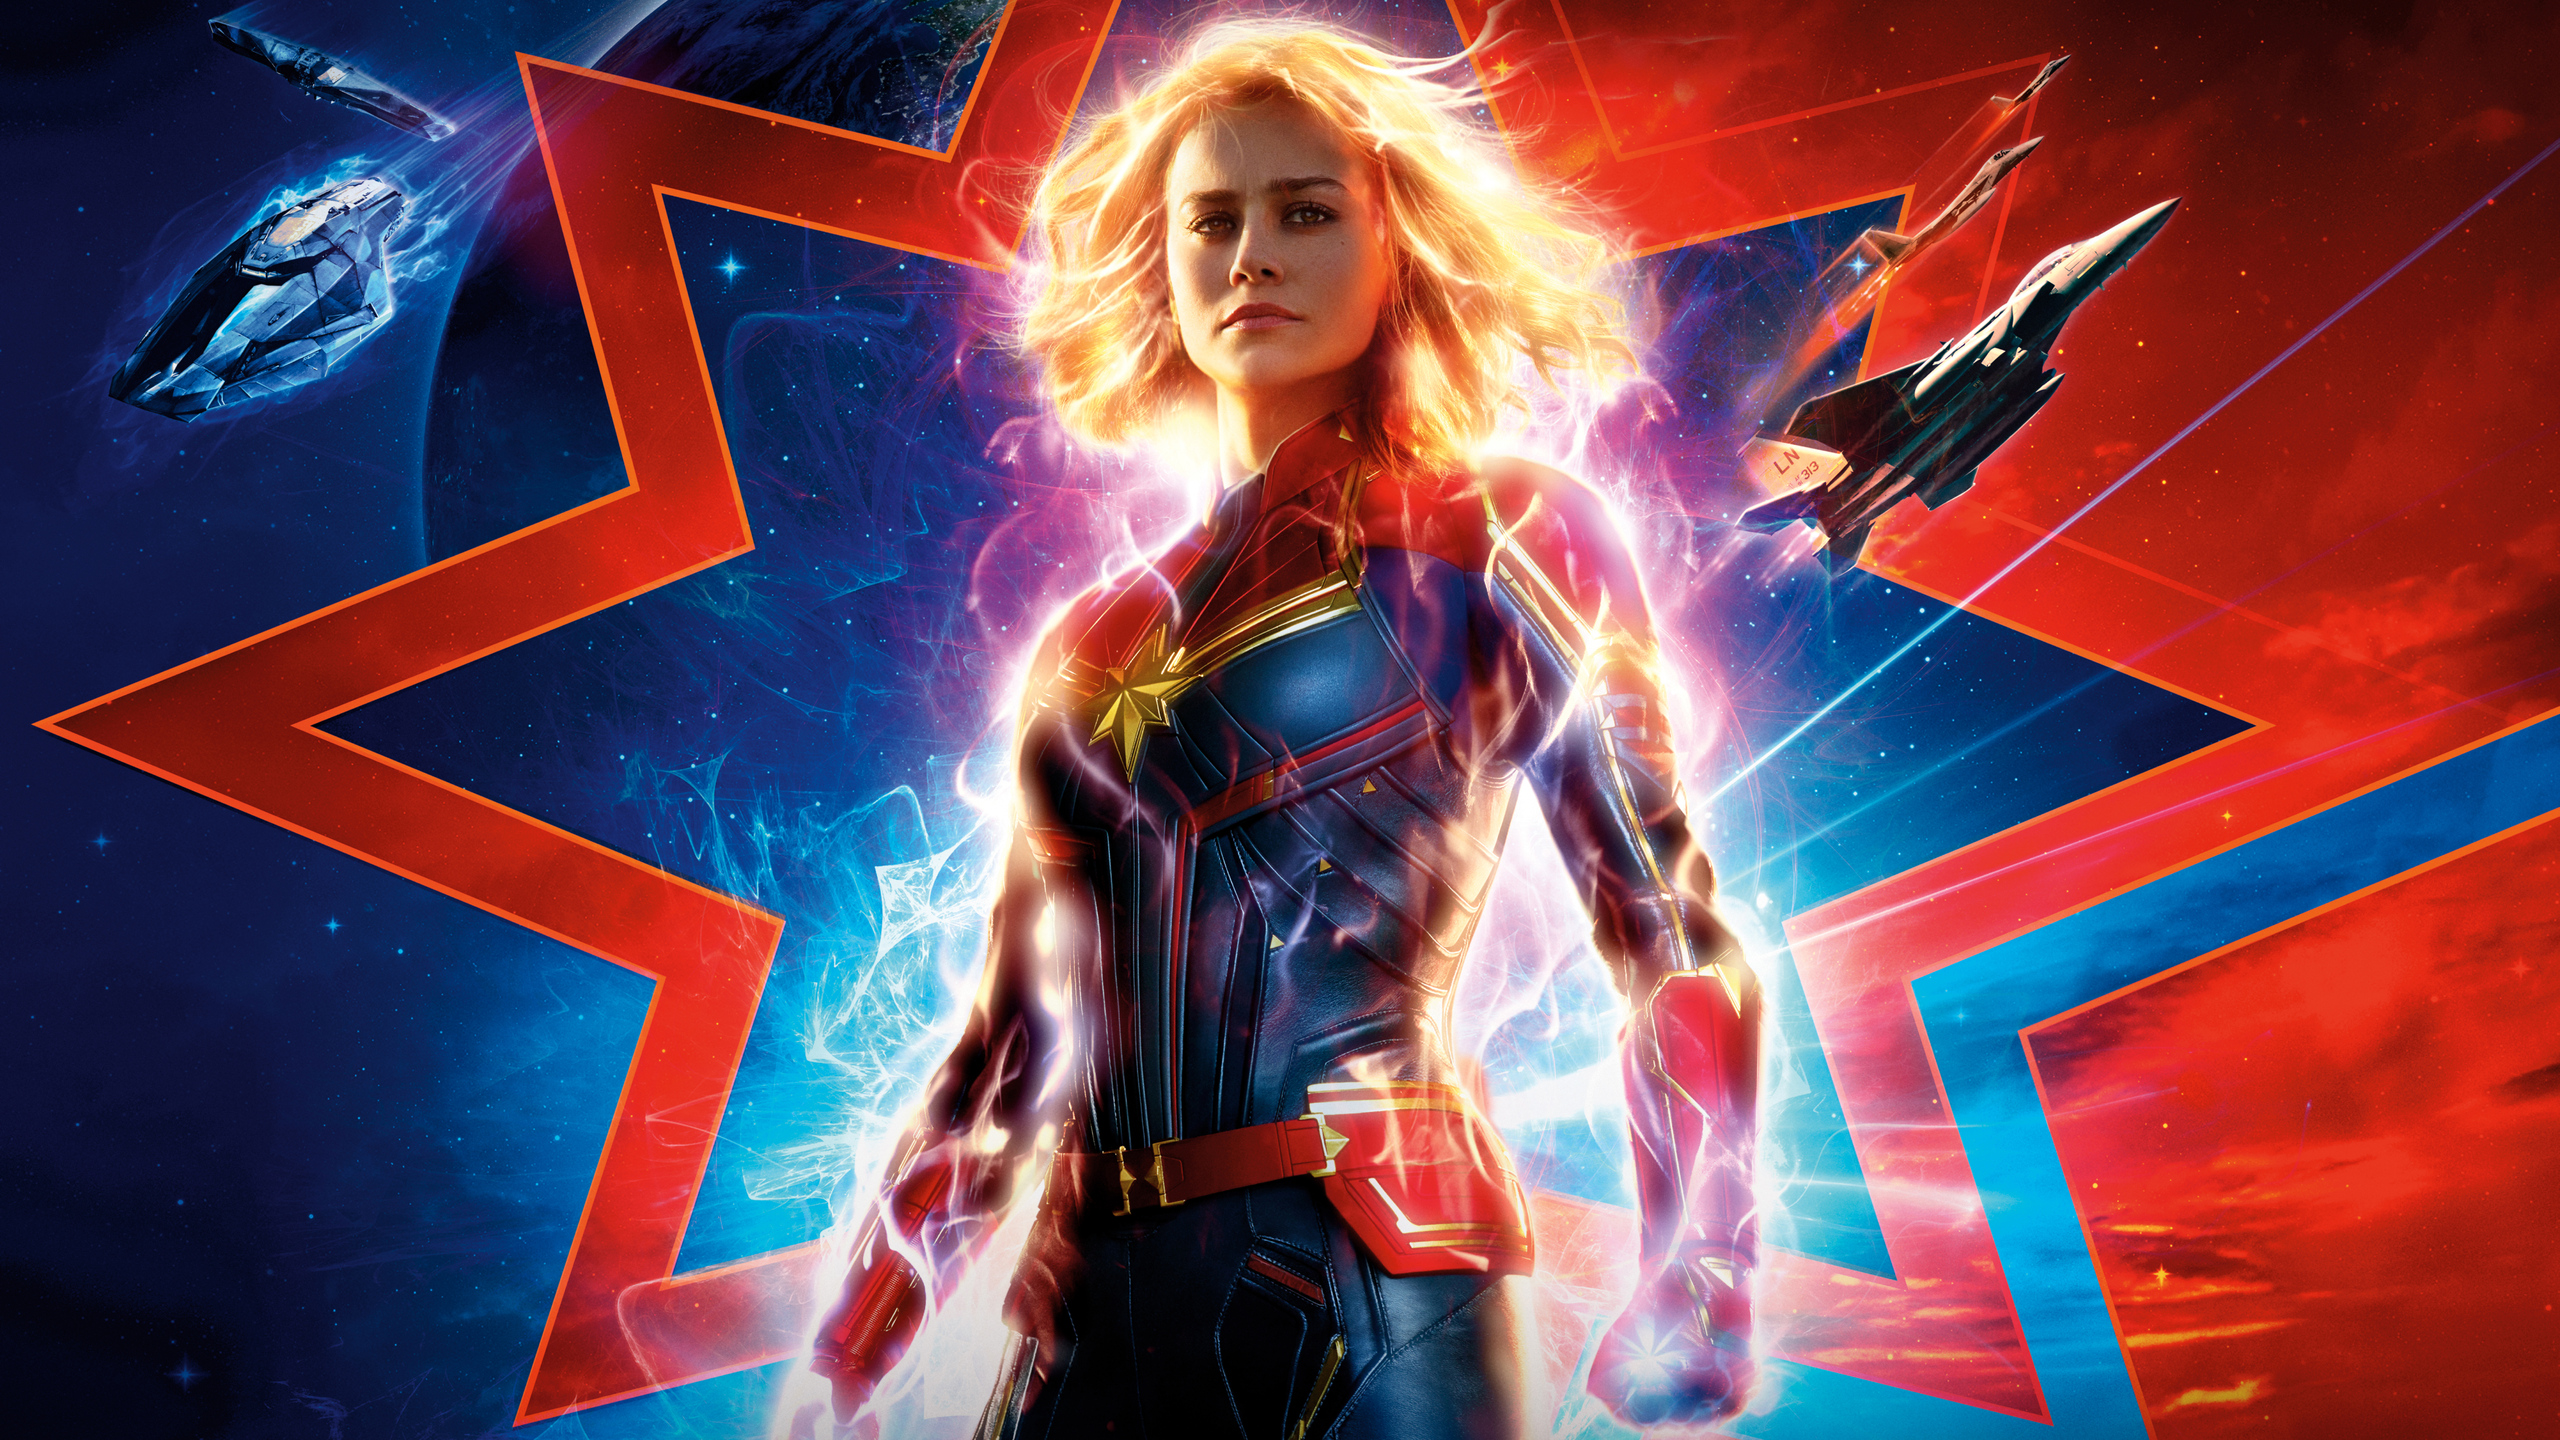 2560x1440 Captain Marvel 2019 10k 1440p Resolution Hd 4k Wallpapers Images Backgrounds Photos And Pictures